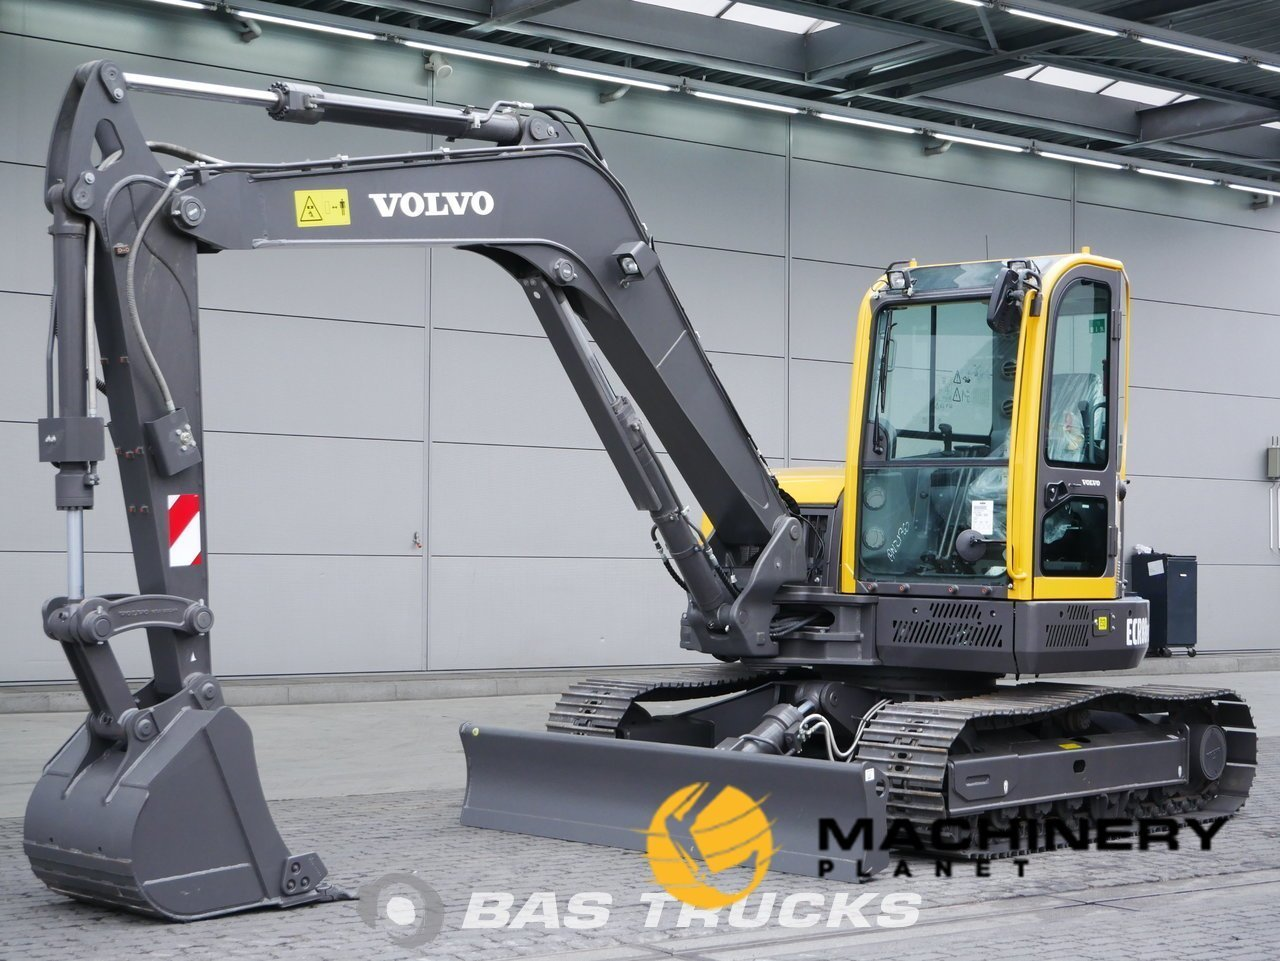 Used-Construction-equipment-Volvo-ECR88-Track-2018_141870_1-1554097413806_5ca1a505c4c66-1.jpg